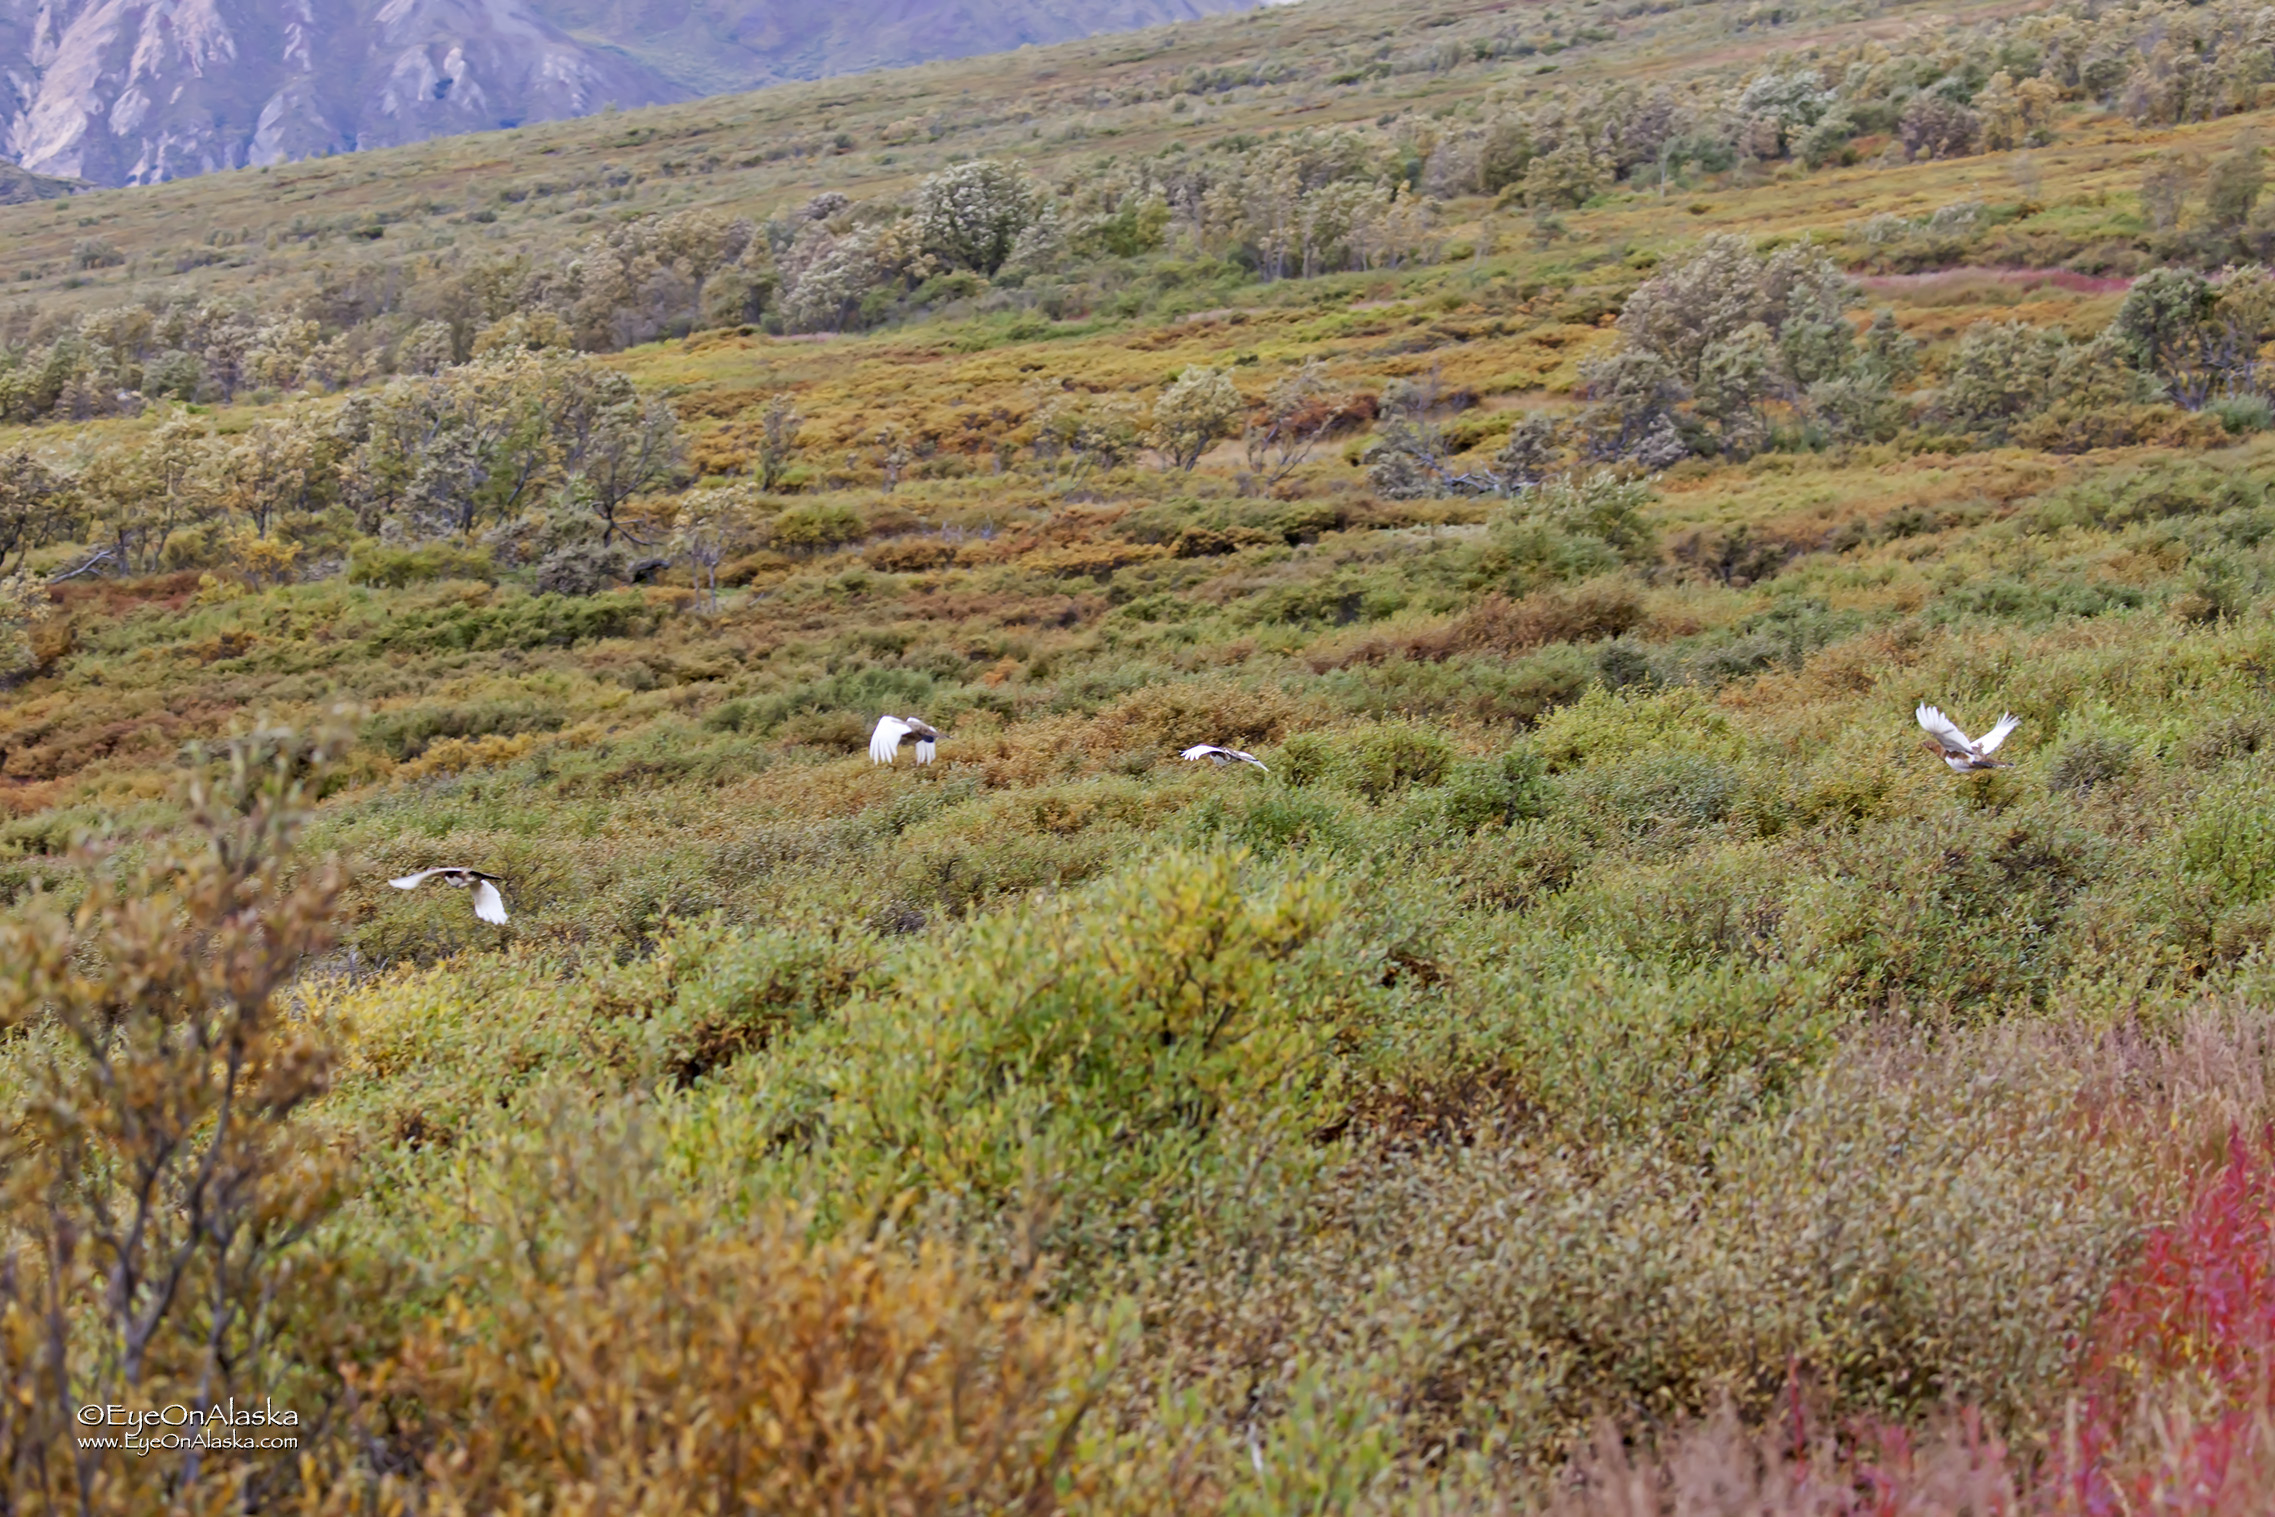 after clucking at us for a bit,  they head off over the tundra.